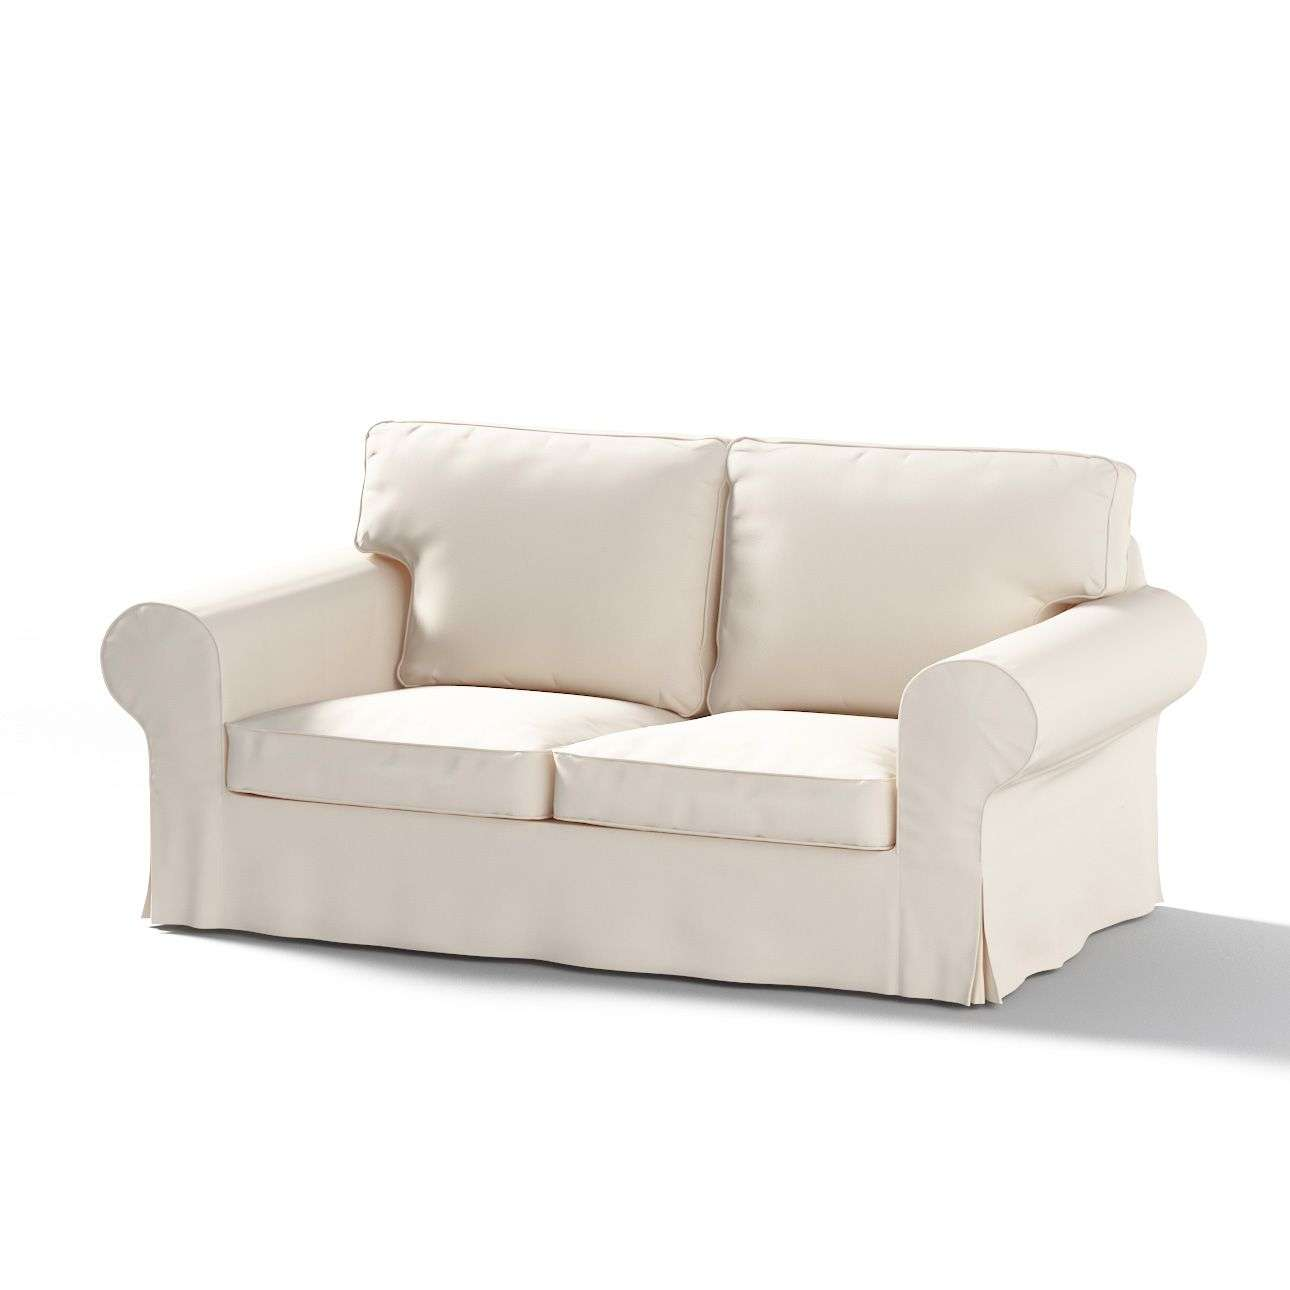 ektorp 2 seater sofa bed cover for model on sale in ikea before 2012